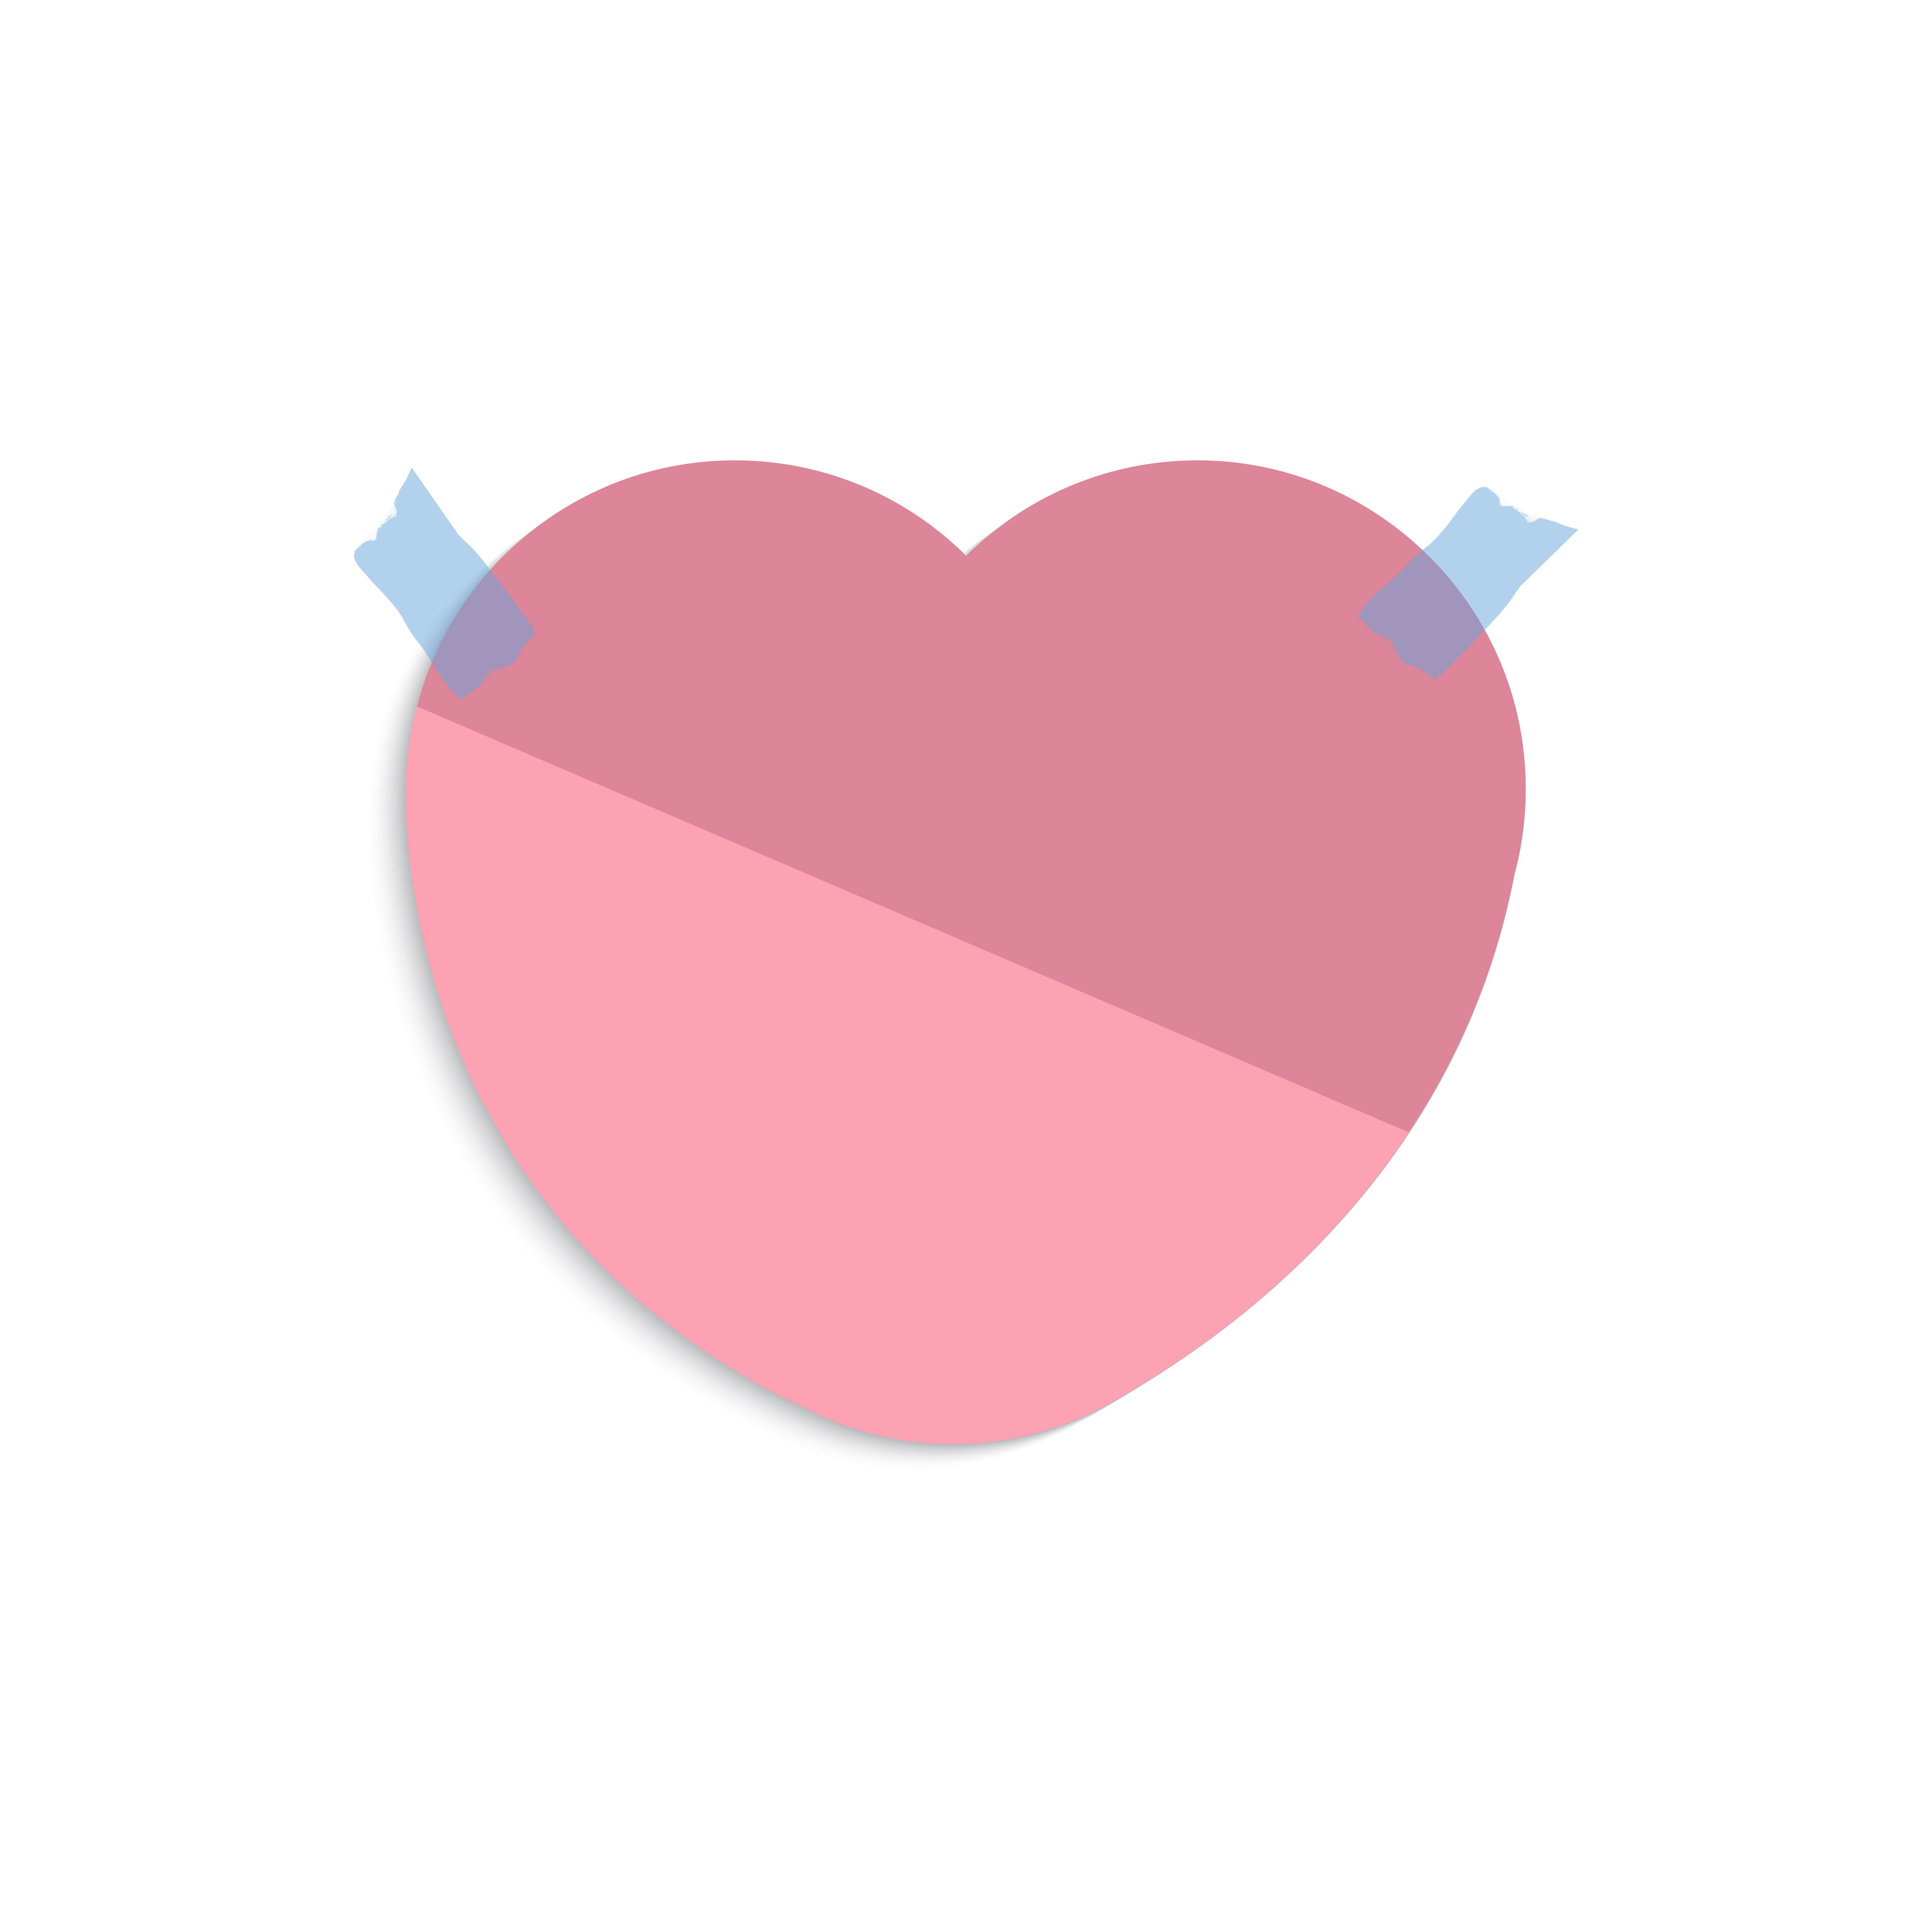 Blank Heart Shaped Reminder Note Vector